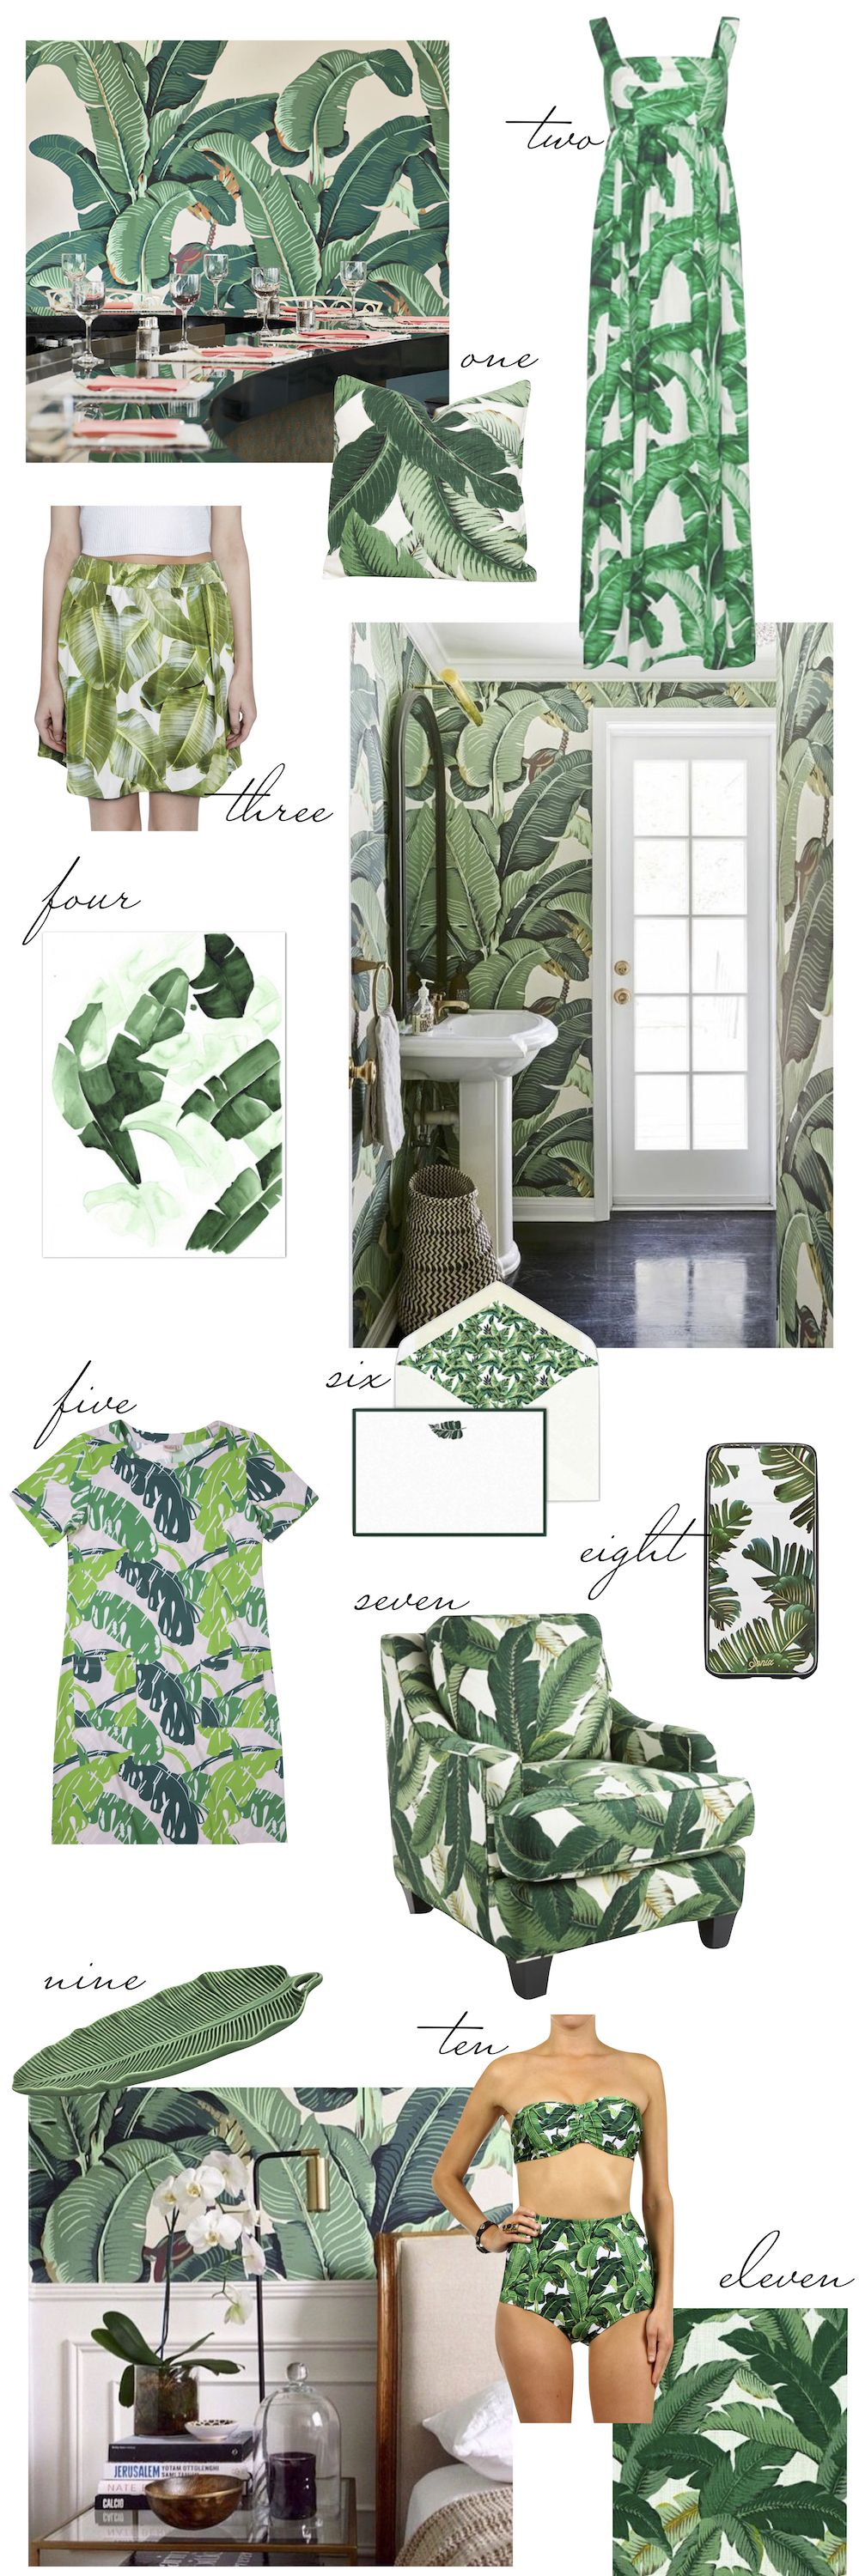 Inspired By Banana Leaf Print Awesome bedrooms, Leaf